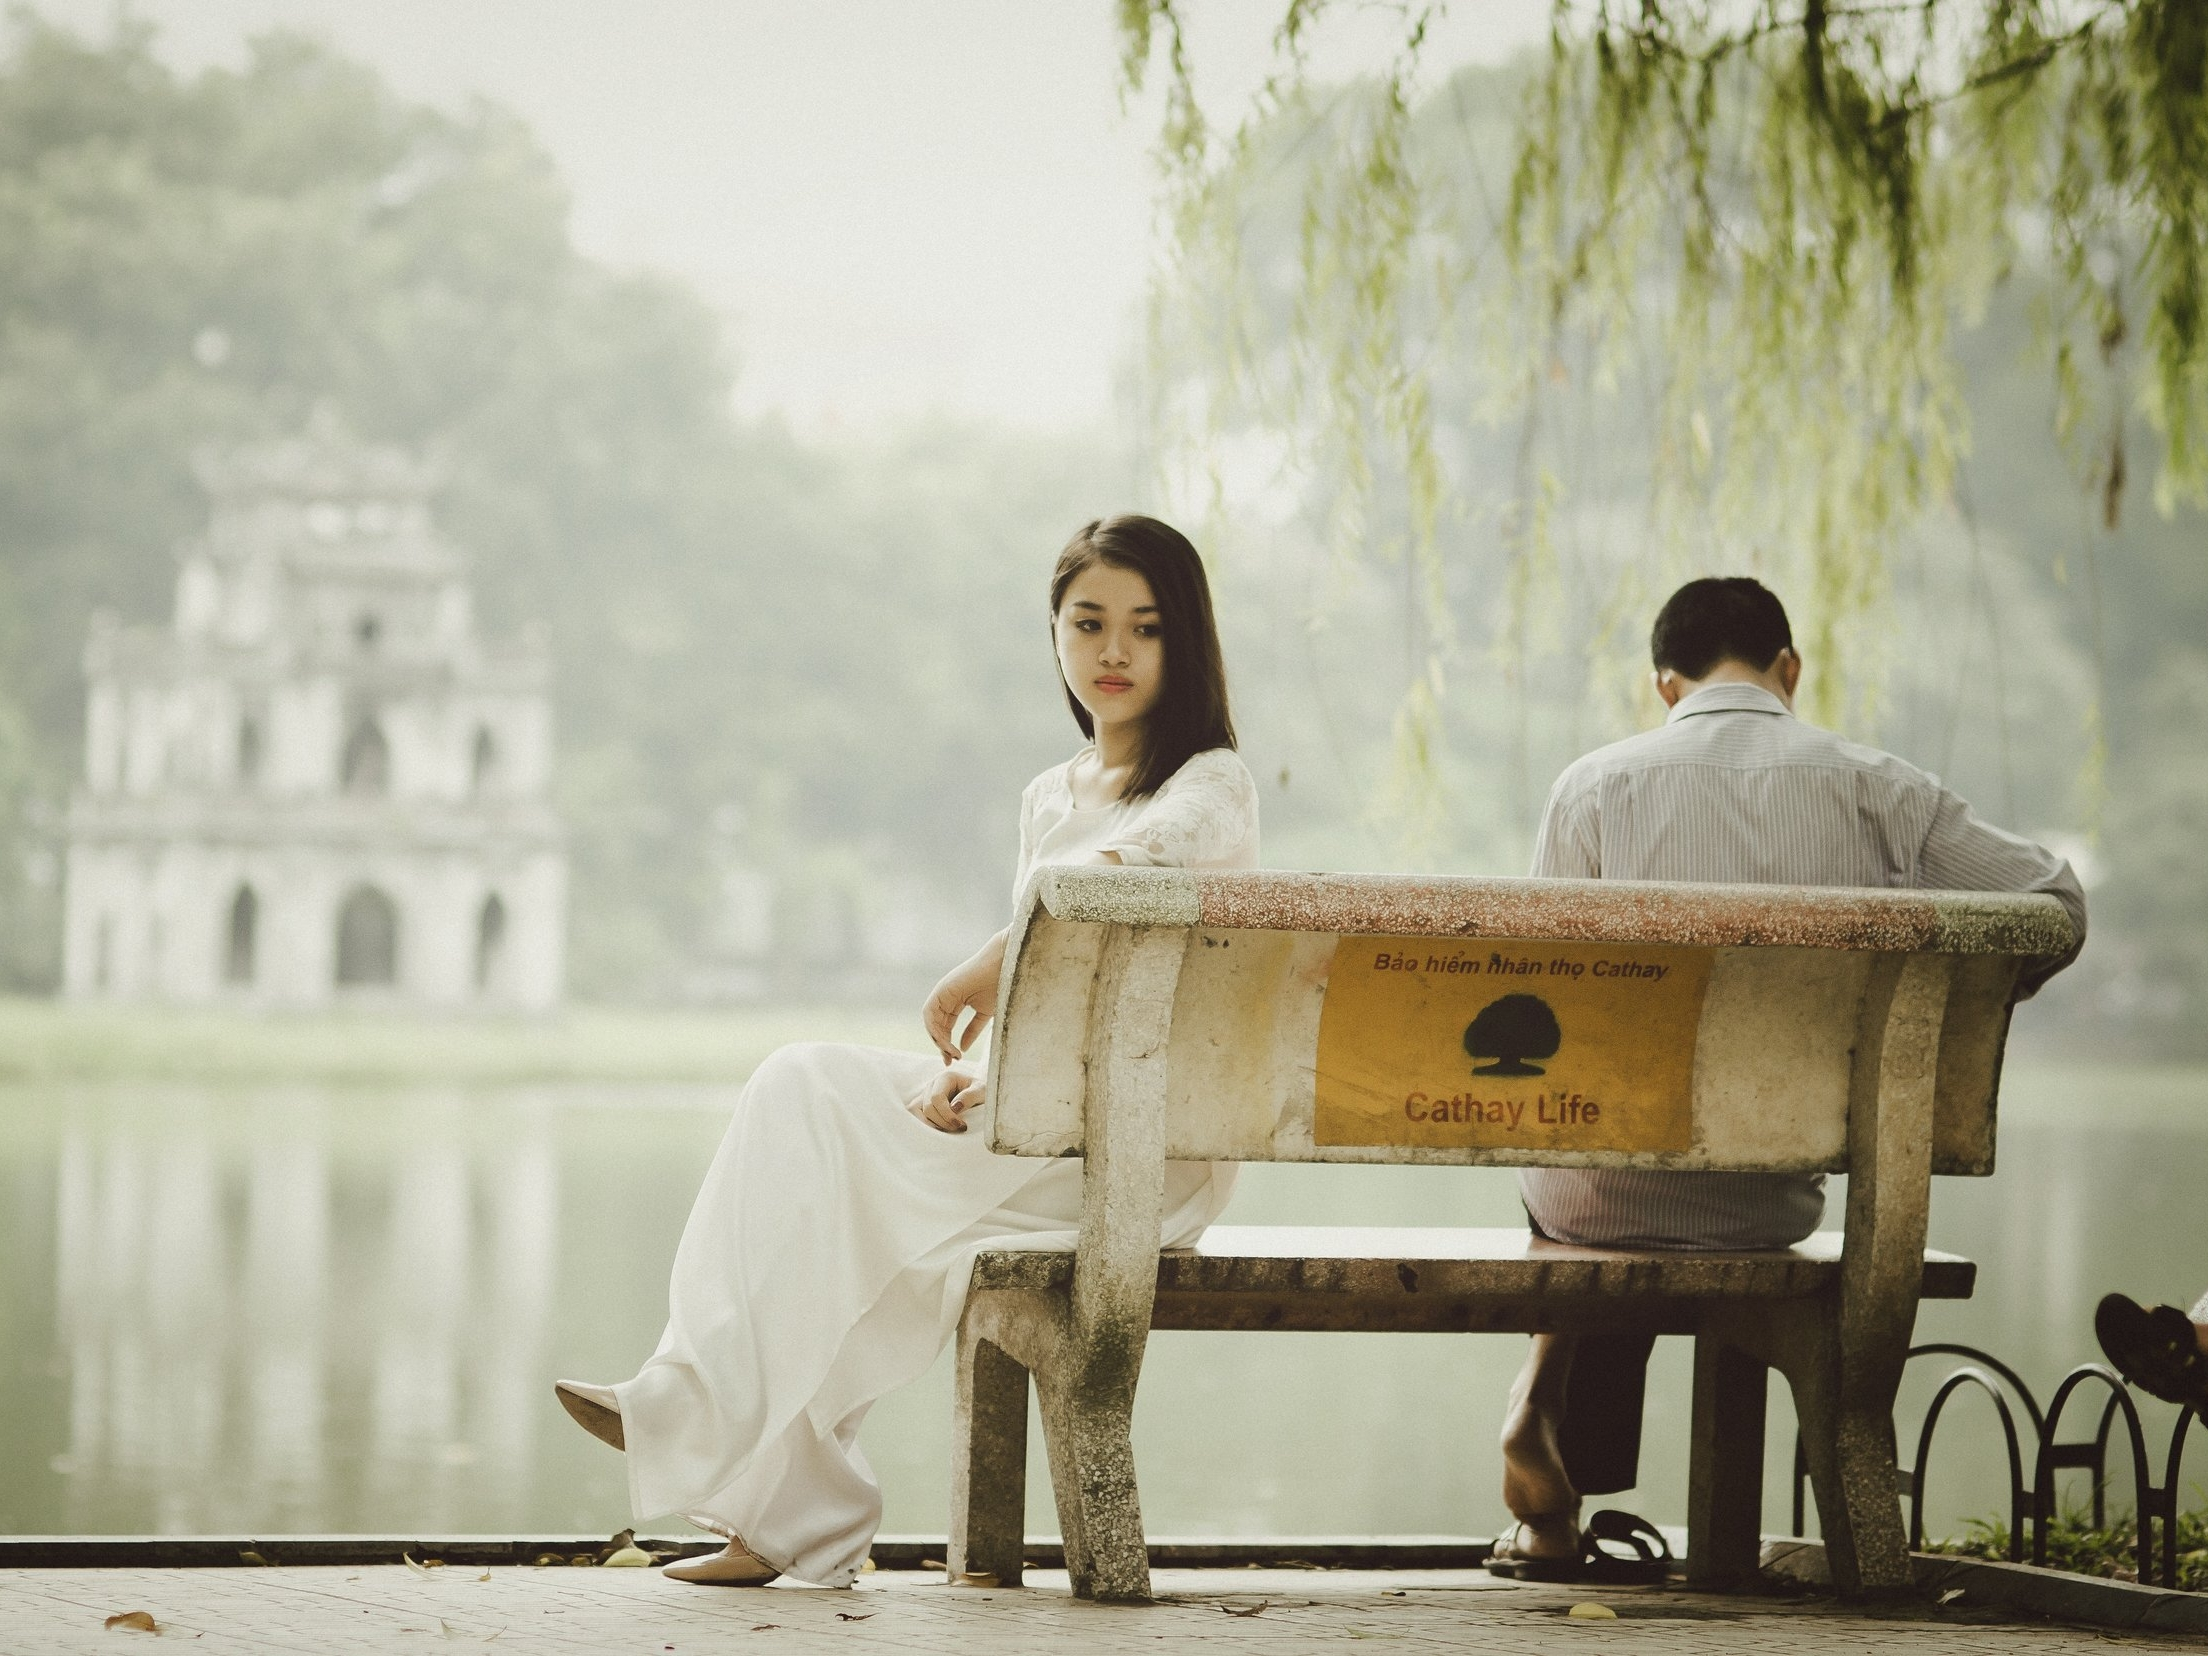 Couples Therapy - Using a treatment method called Emotionally Focused Couples Therapy (EFT), I help couples with diverse experiences resolve interpersonal distress by facilitating a safe environment in which partners can create new ways of building connection and closeness.Click here for more information >